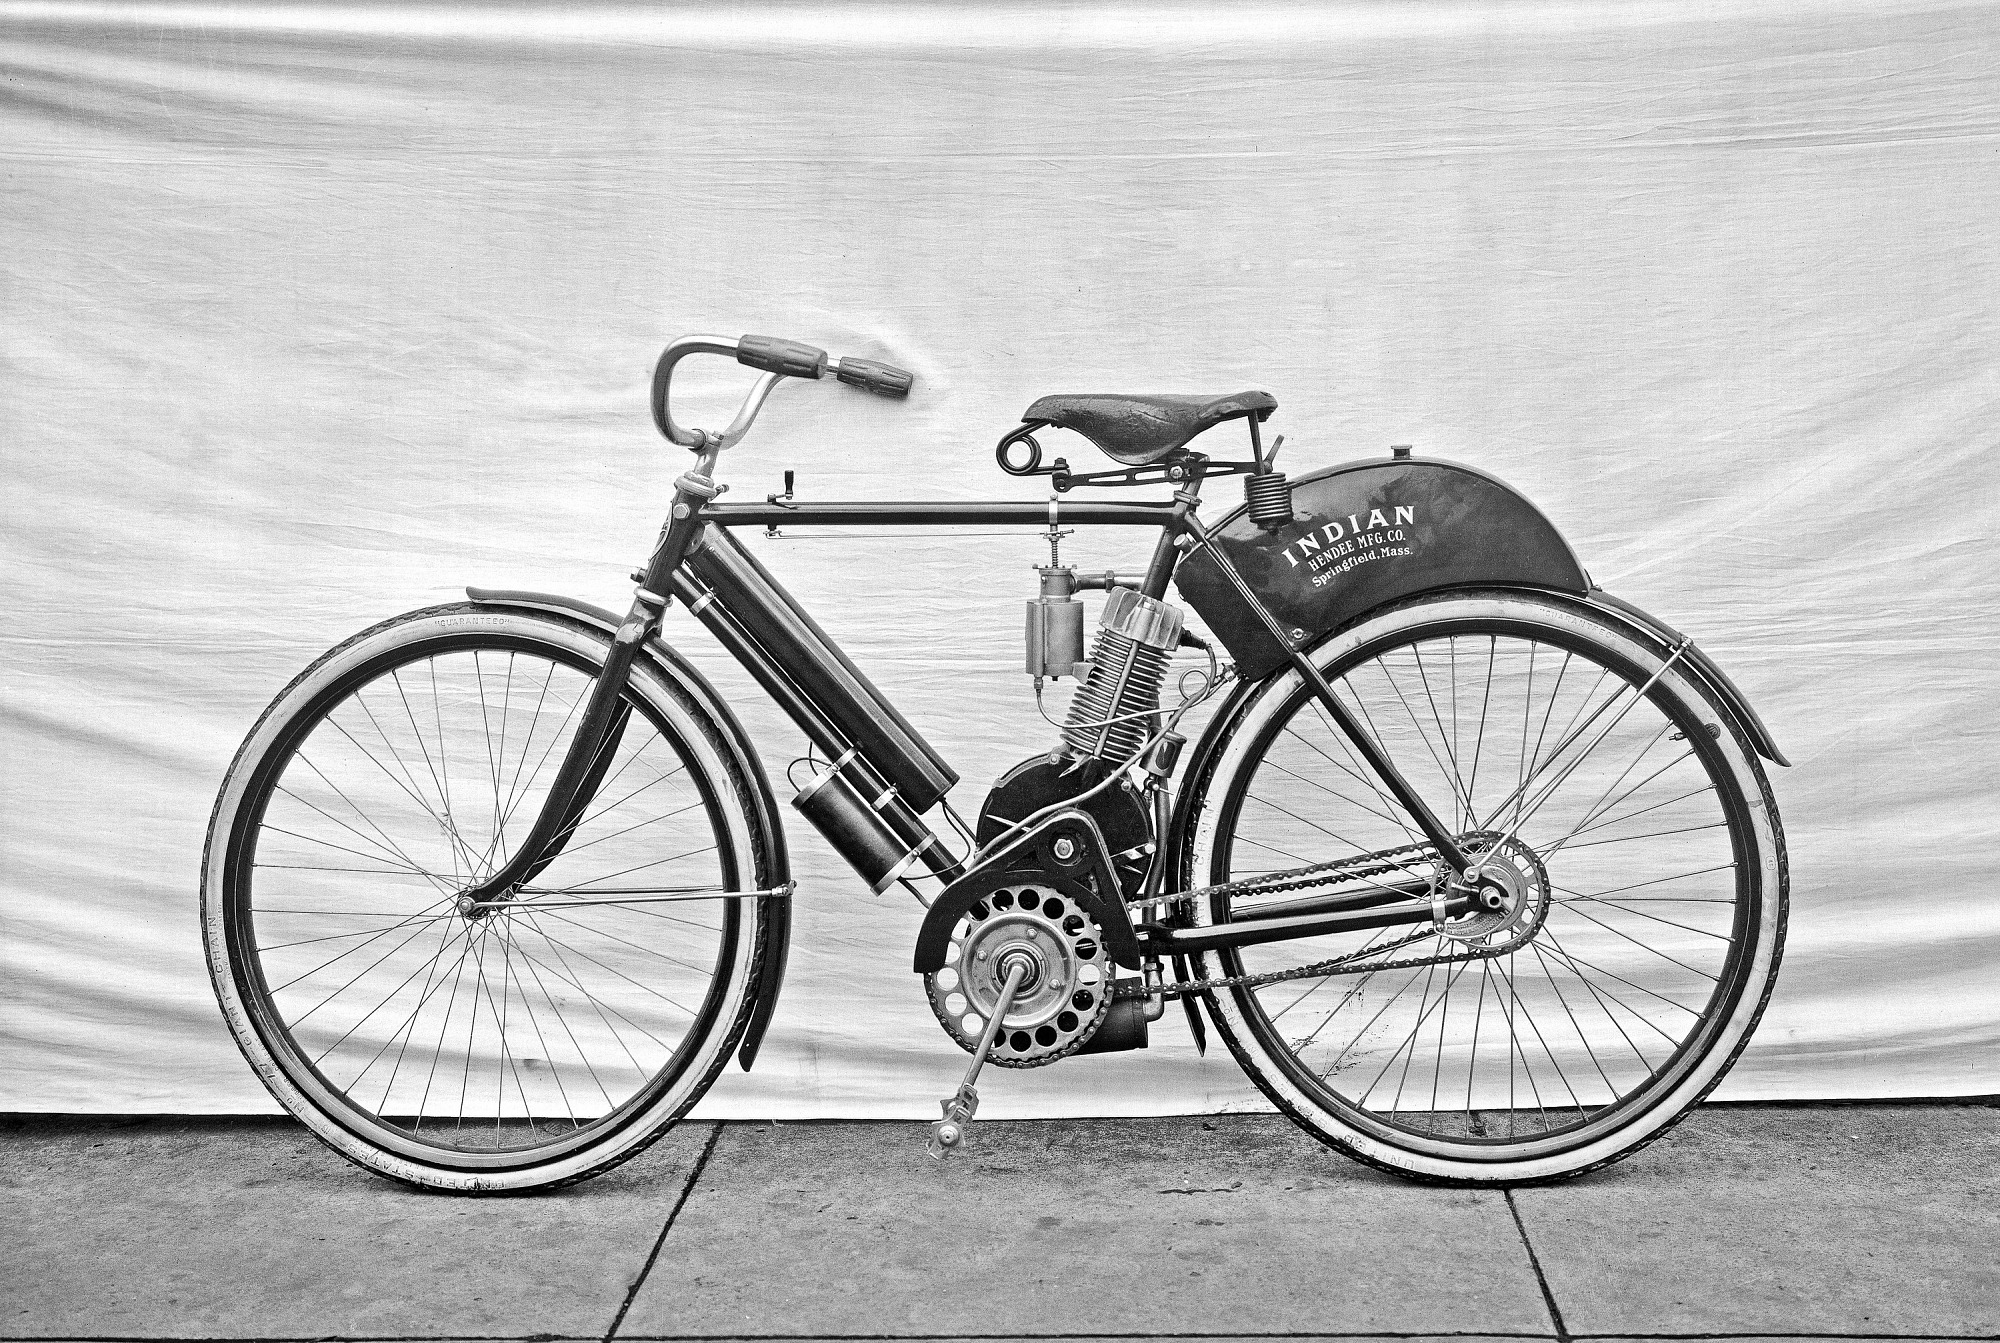 Indian Motorcycle, 1902